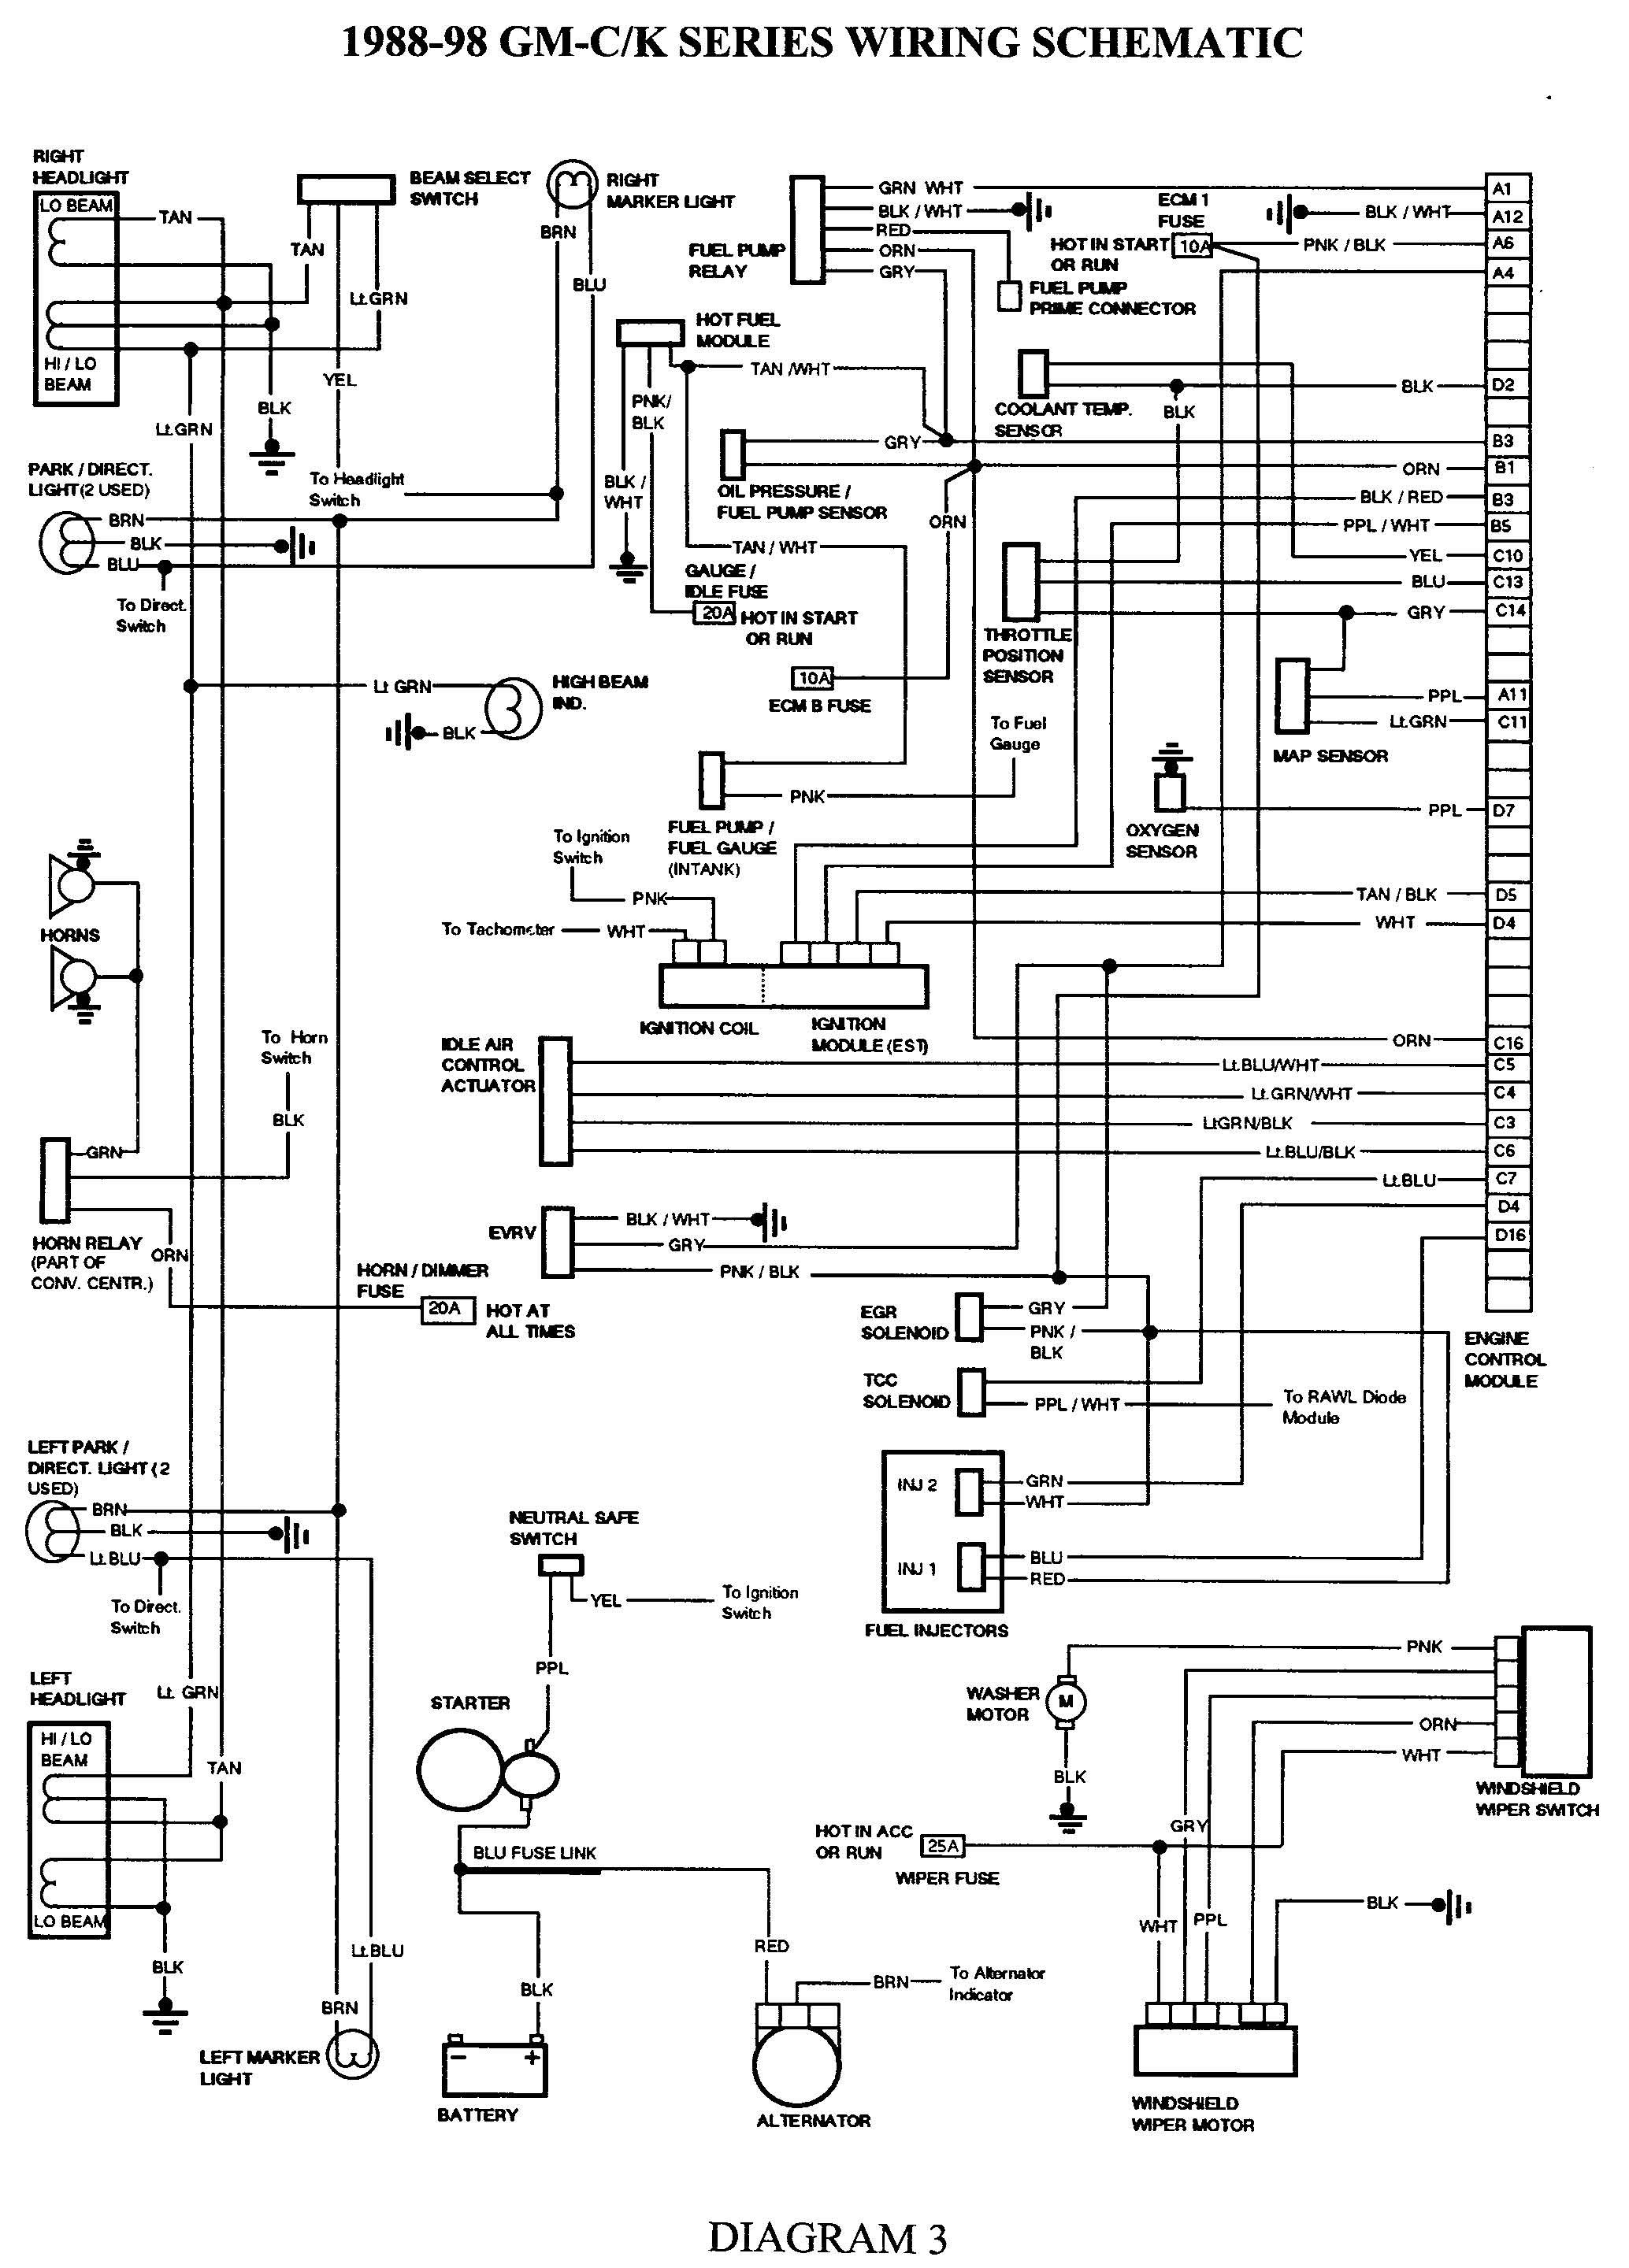 2006 Gmc Savana Wiring Diagrams | Online Wiring Diagram Mars Wiring Diagram Color on color wiring code, bug diagram, color sensor diagram, color filters diagram, color body diagram,